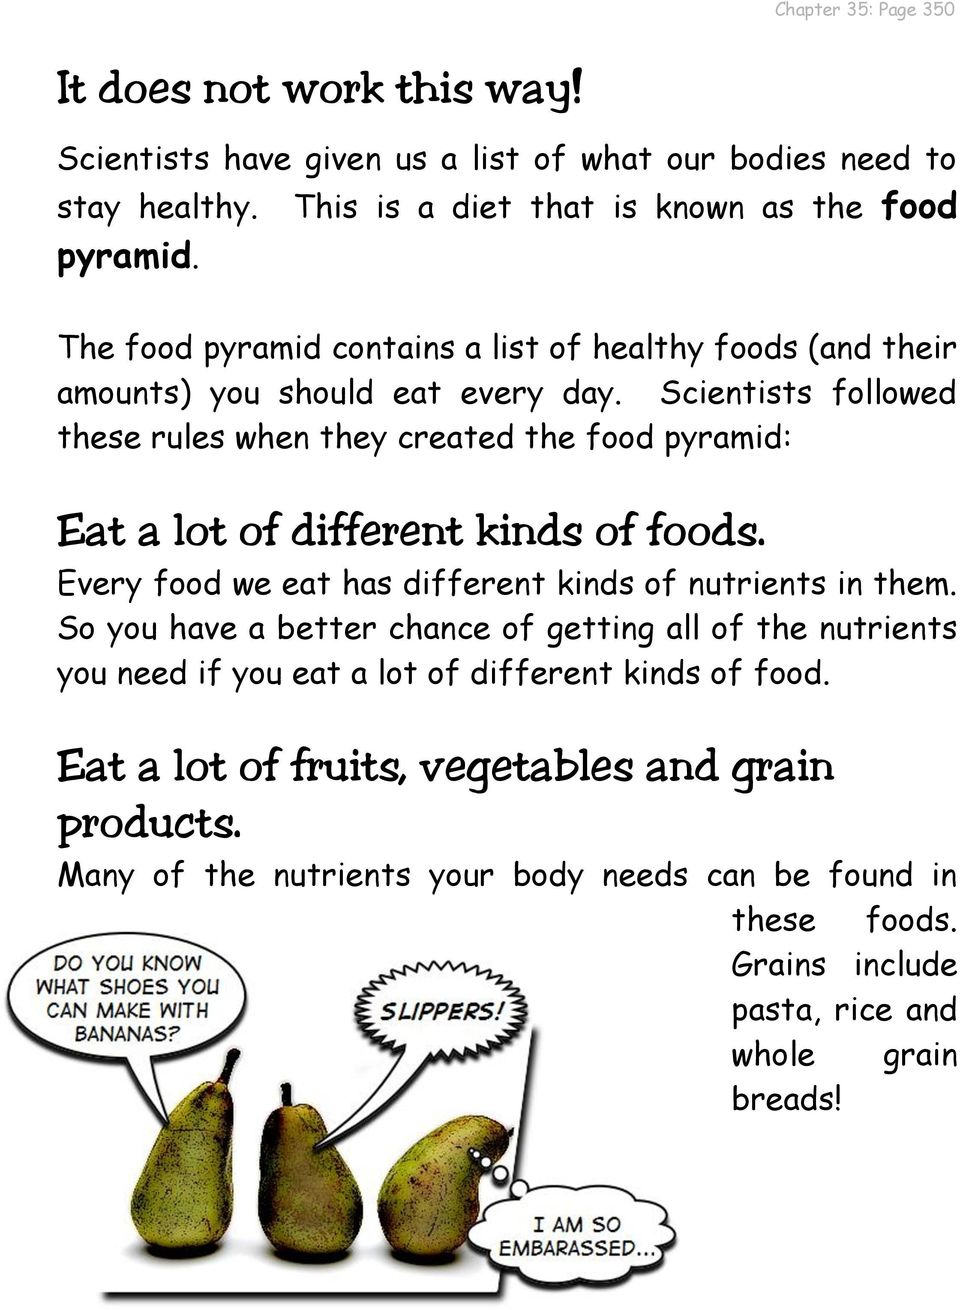 Scientists followed these rules when they created the food pyramid: Eat a lot of different kinds of foods. Every food we eat has different kinds of nutrients in them.